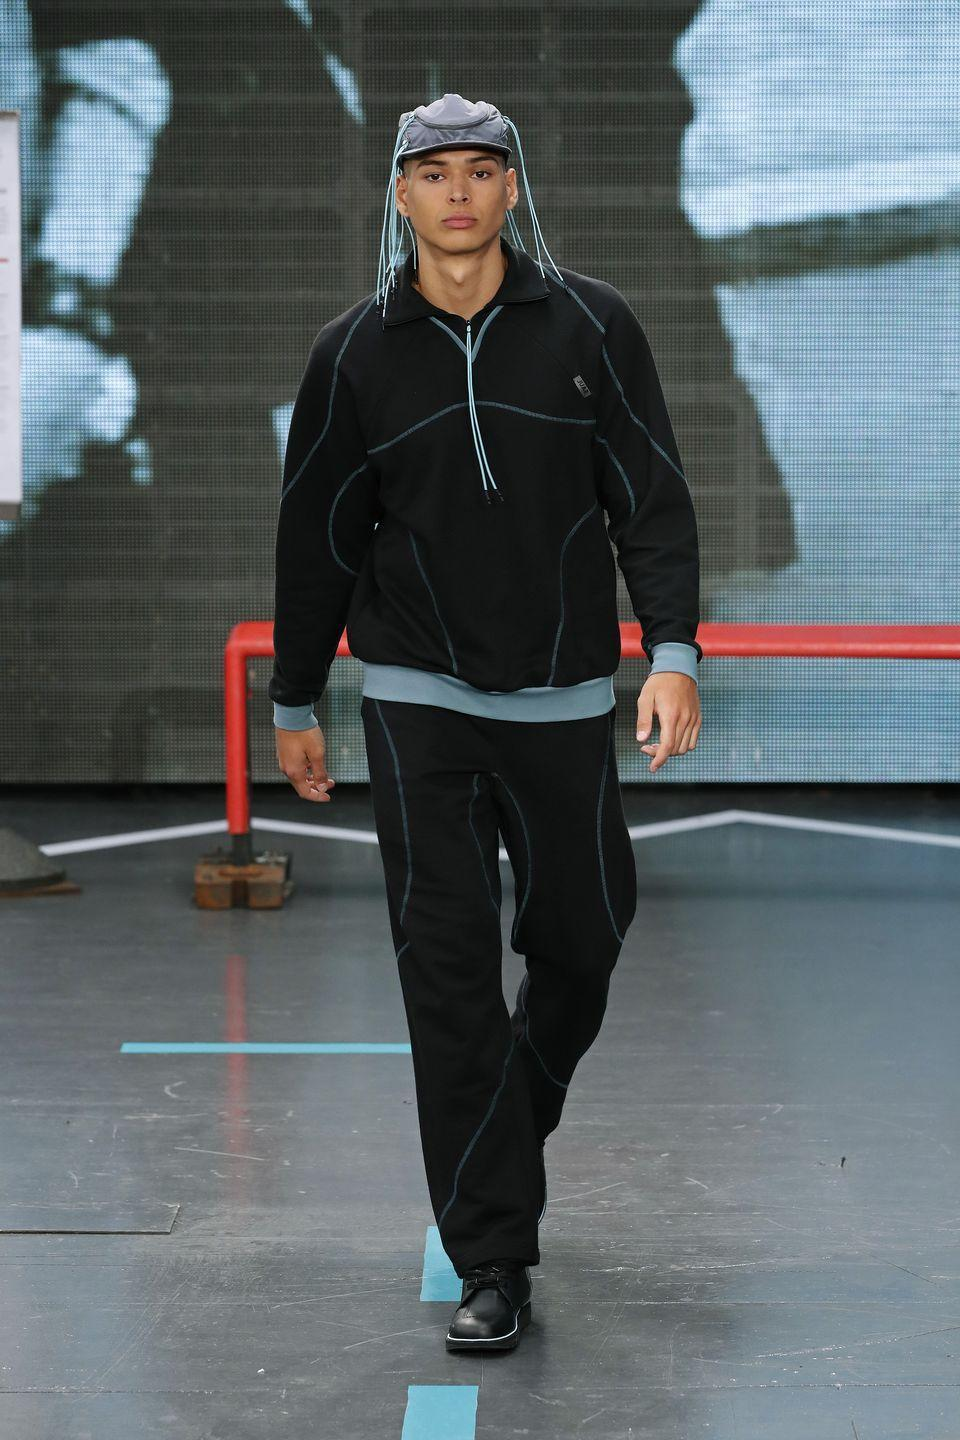 <p><strong>Wear: </strong>The tracksuits</p>